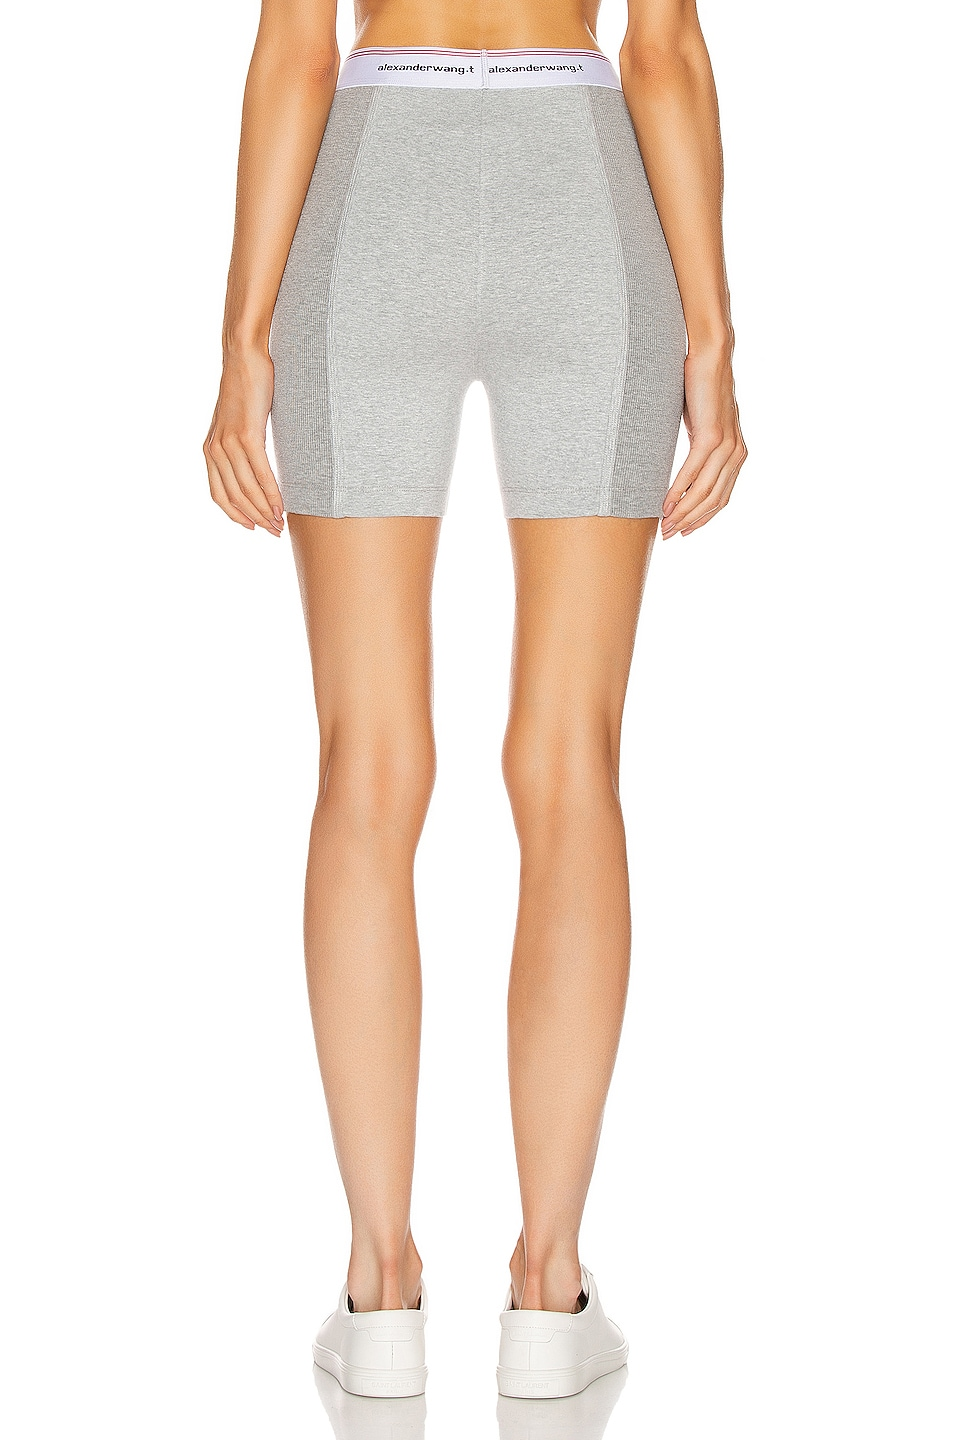 Image 3 of T by Alexander Wang Wash and Go Rib Biker Shorts in Heather Grey